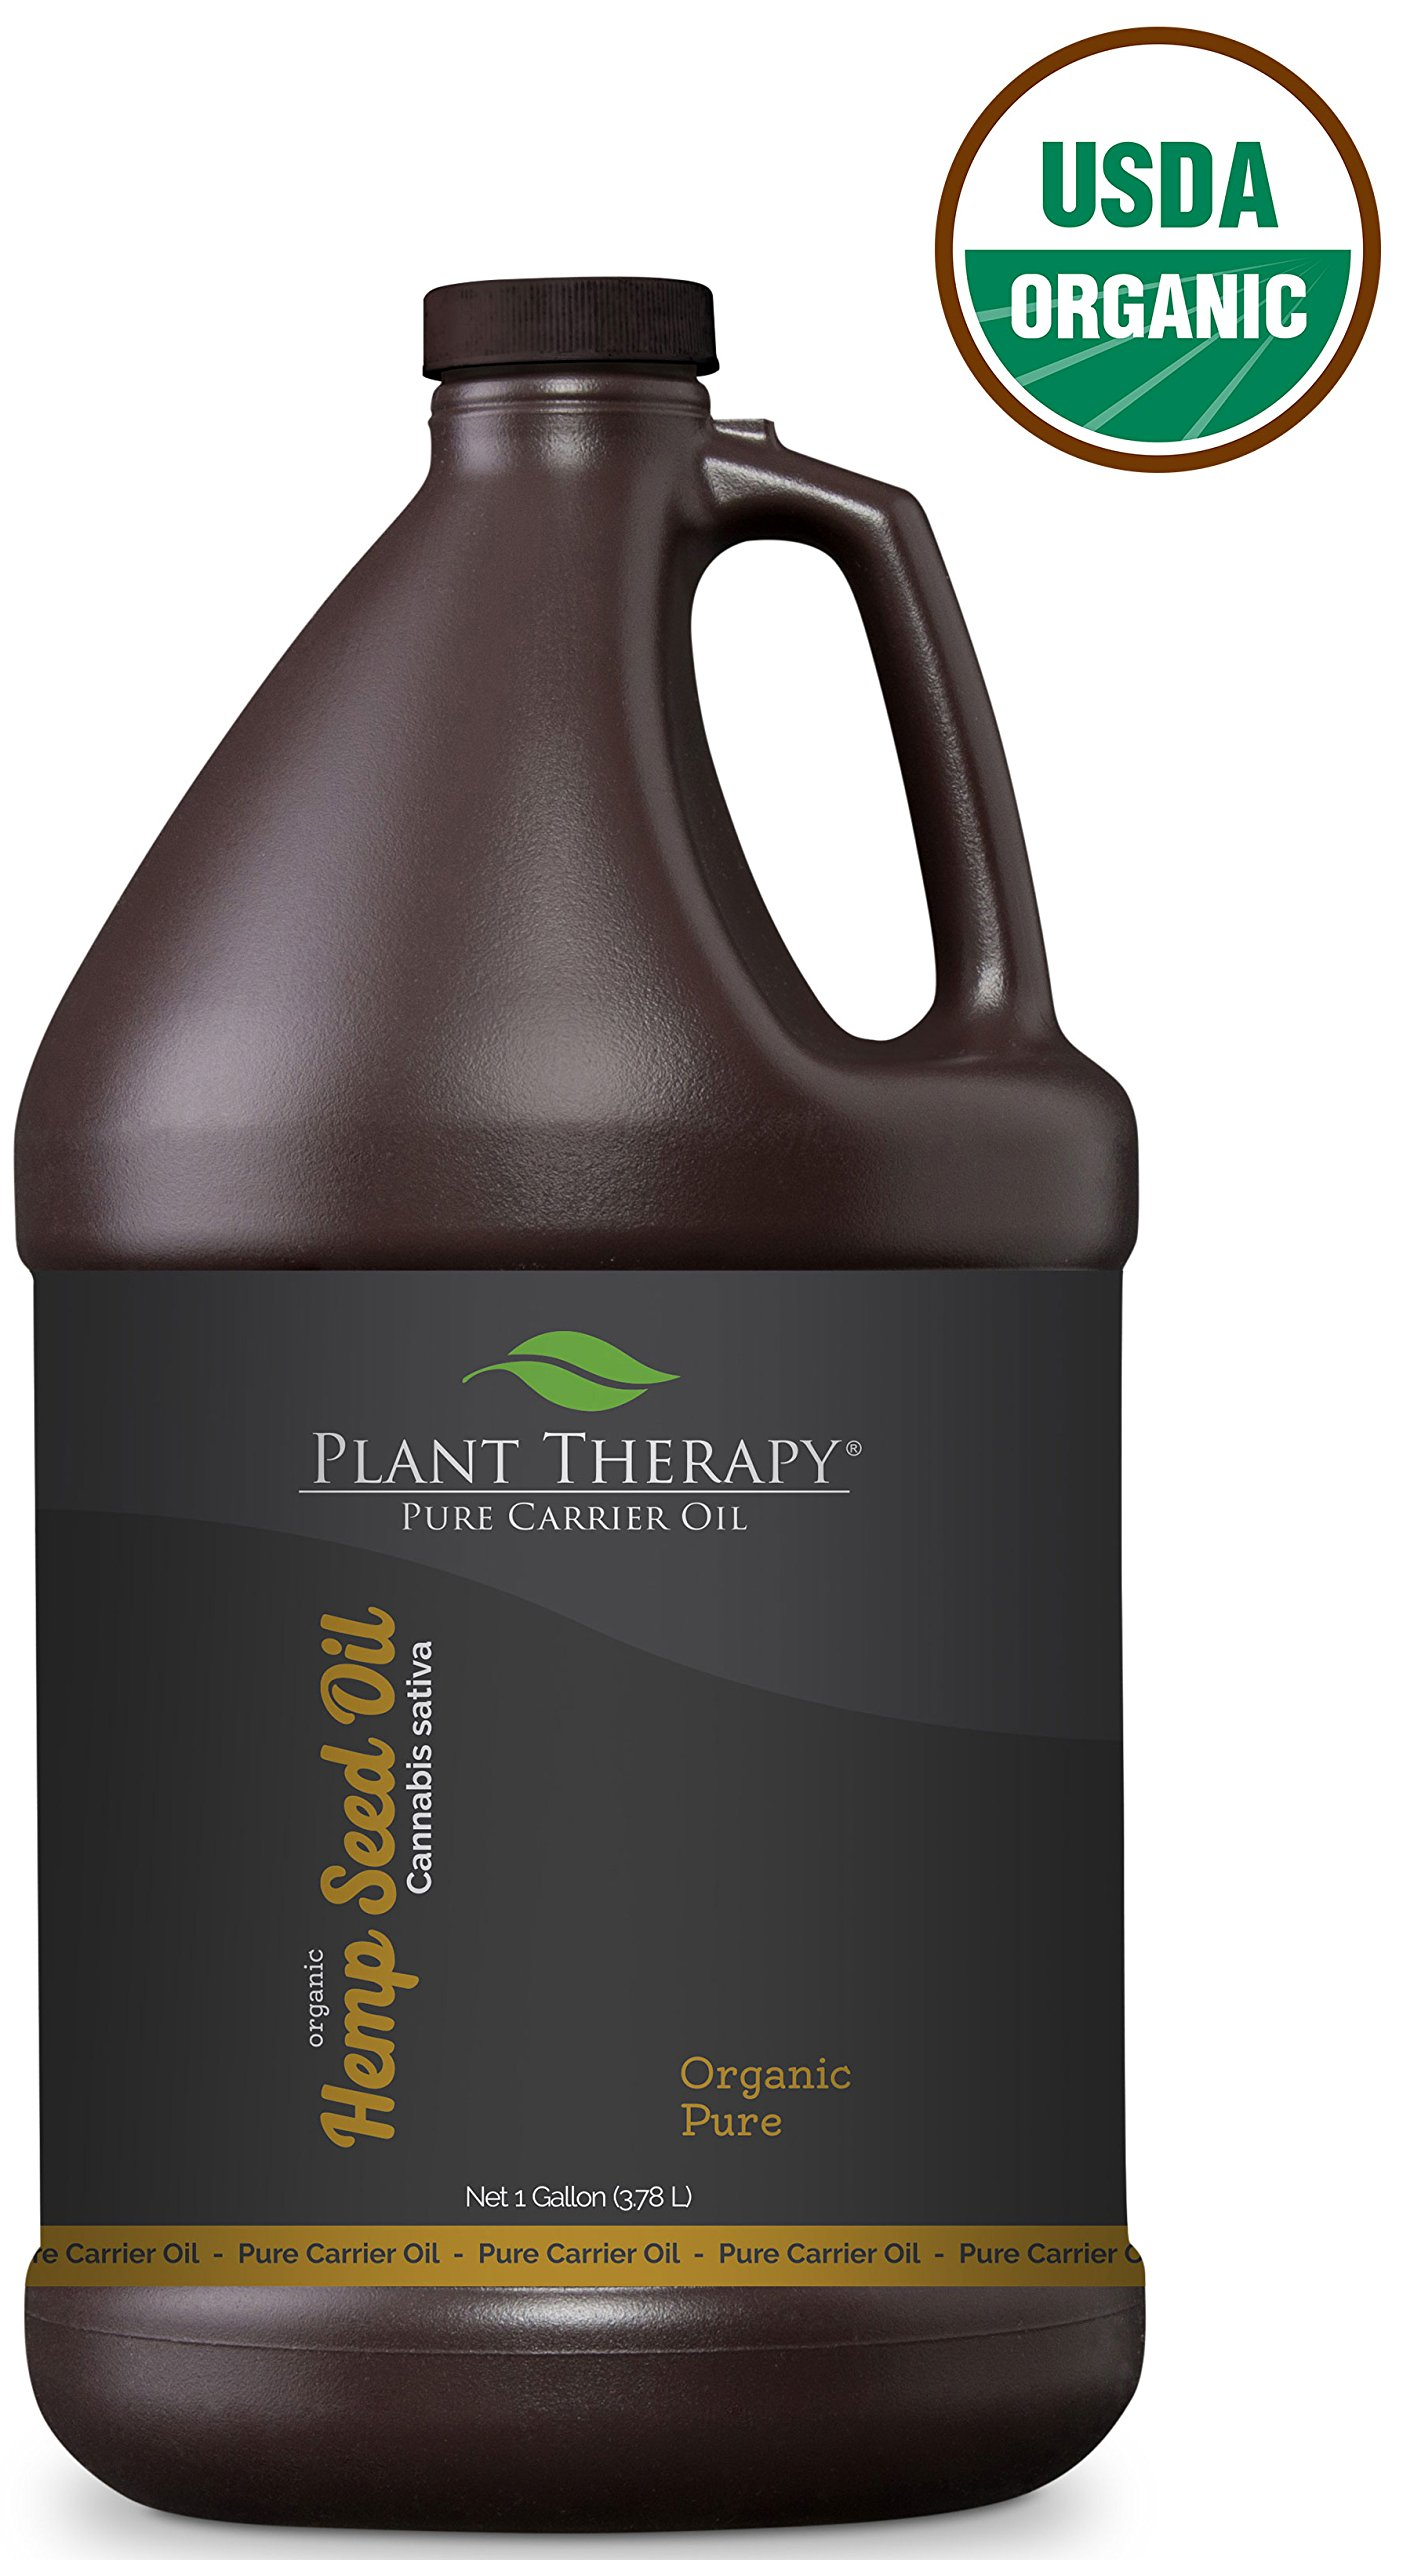 Plant Therapy Organic Hemp Seed Carrier Oil. A base for Aromatherapy, Essential Oils, or Massage Use. 1 gal.